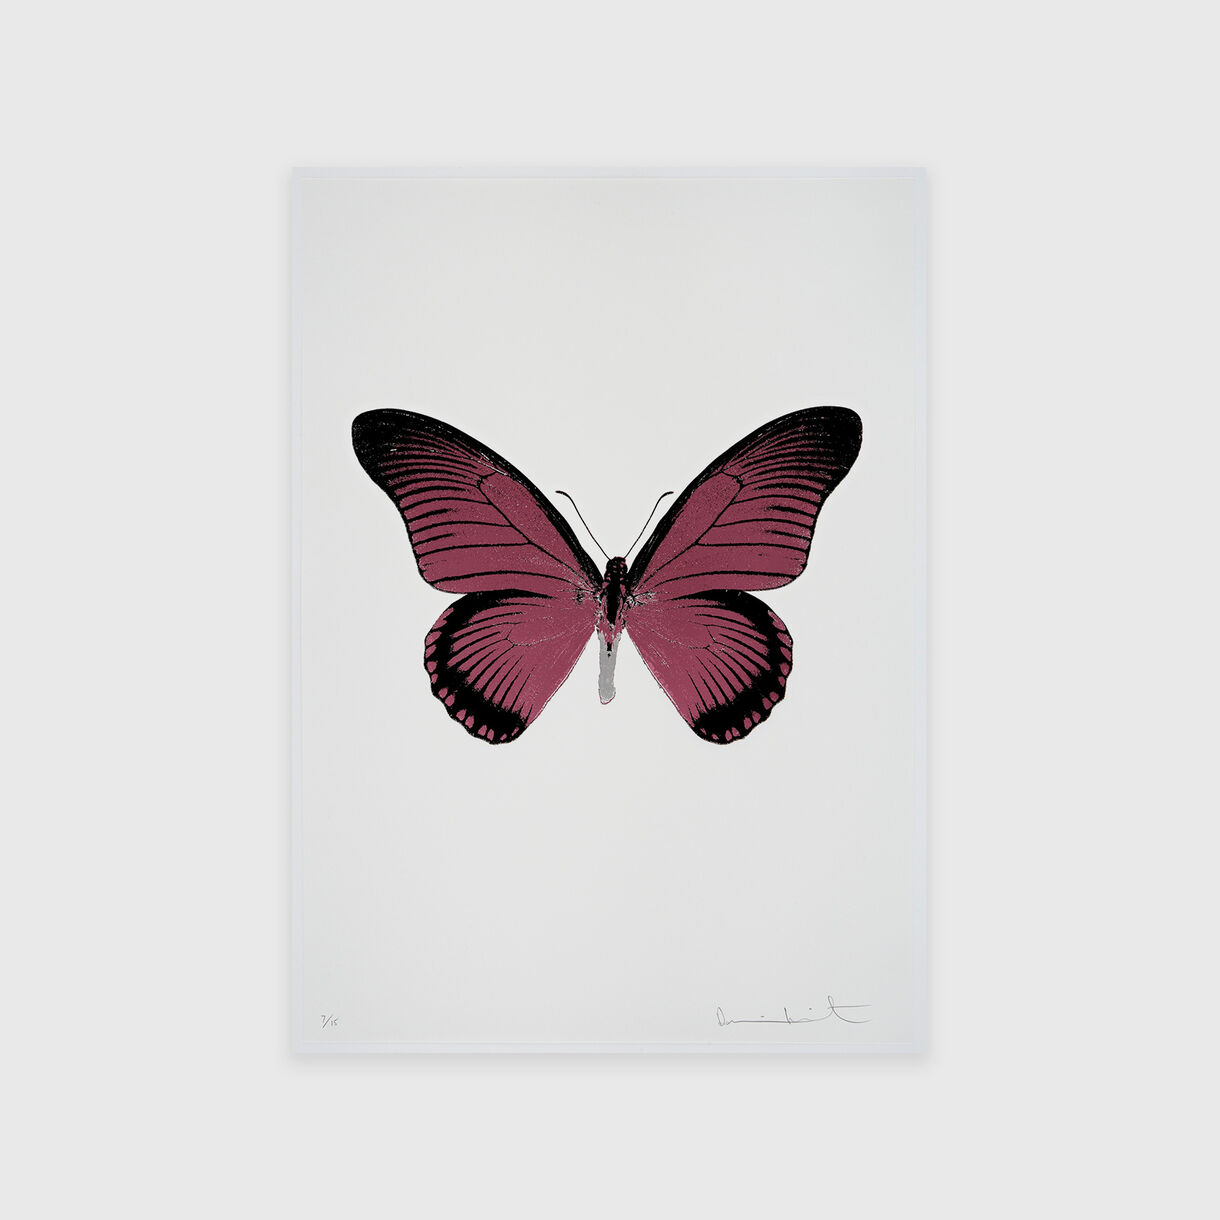 The Souls IV – Loganberry Pink, Raven Black, Silver Gloss, Damien Hirst